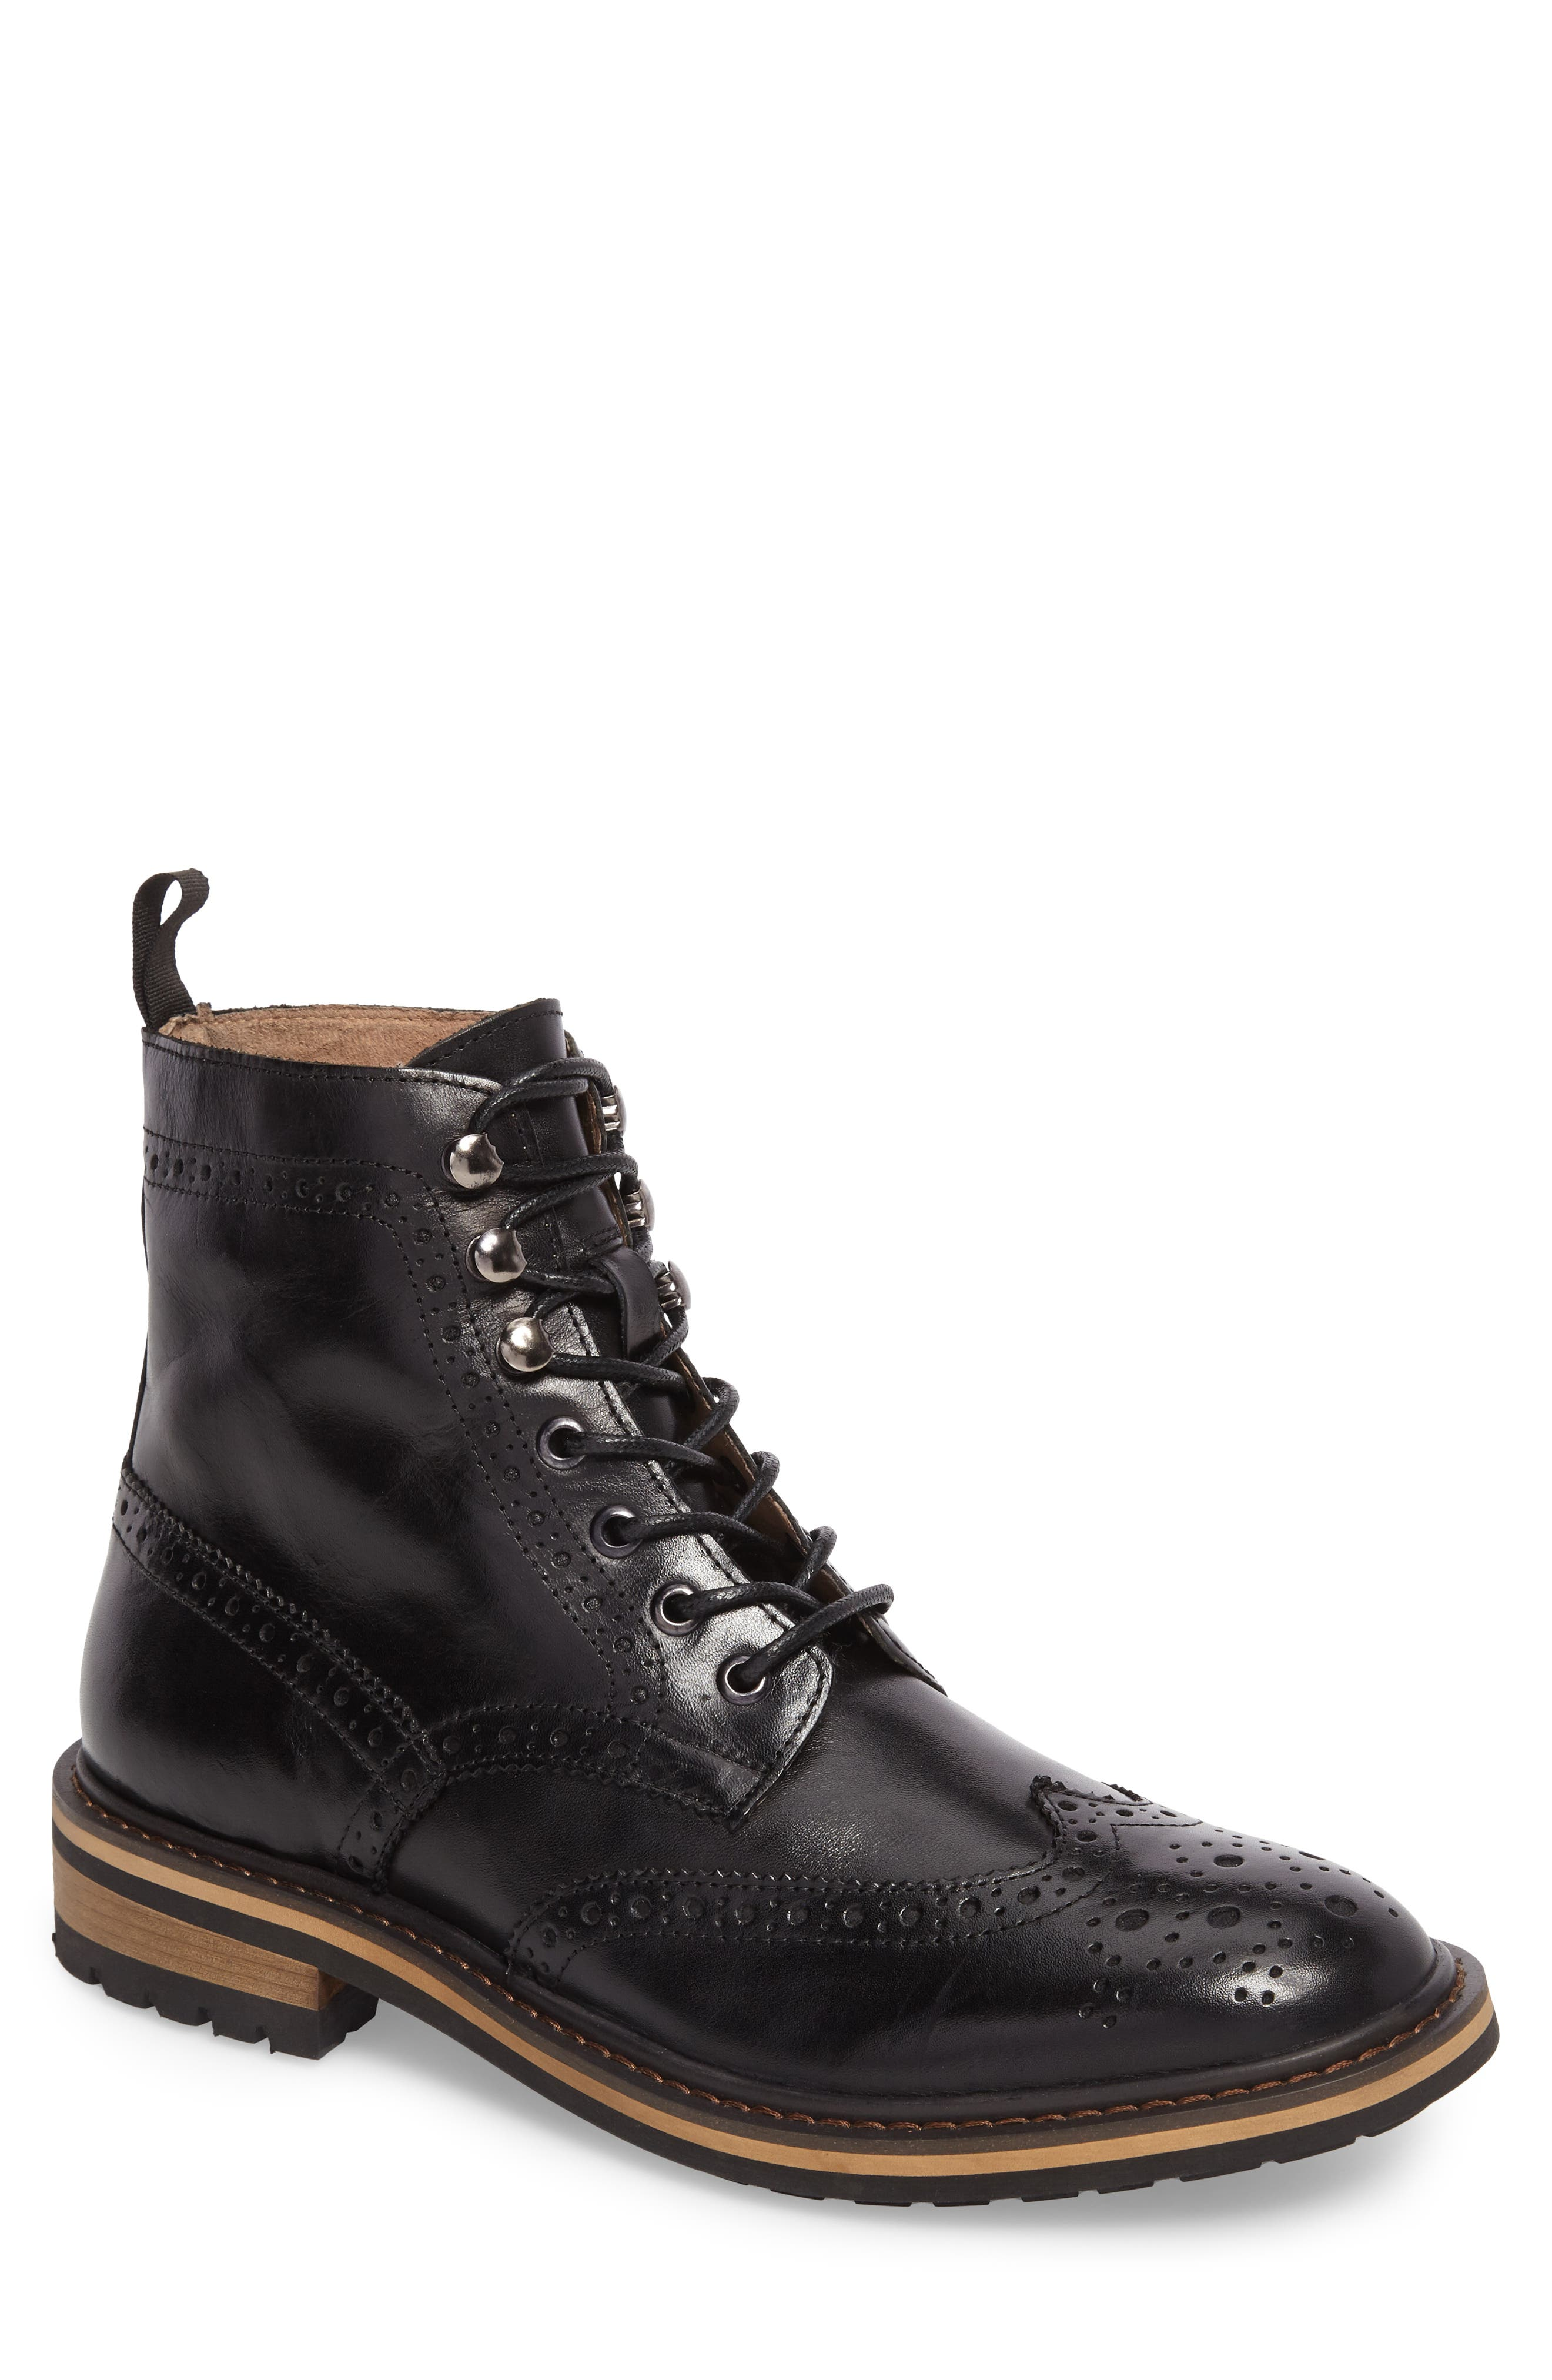 Grange Wingtip Boot,                         Main,                         color, Black Smooth Leather